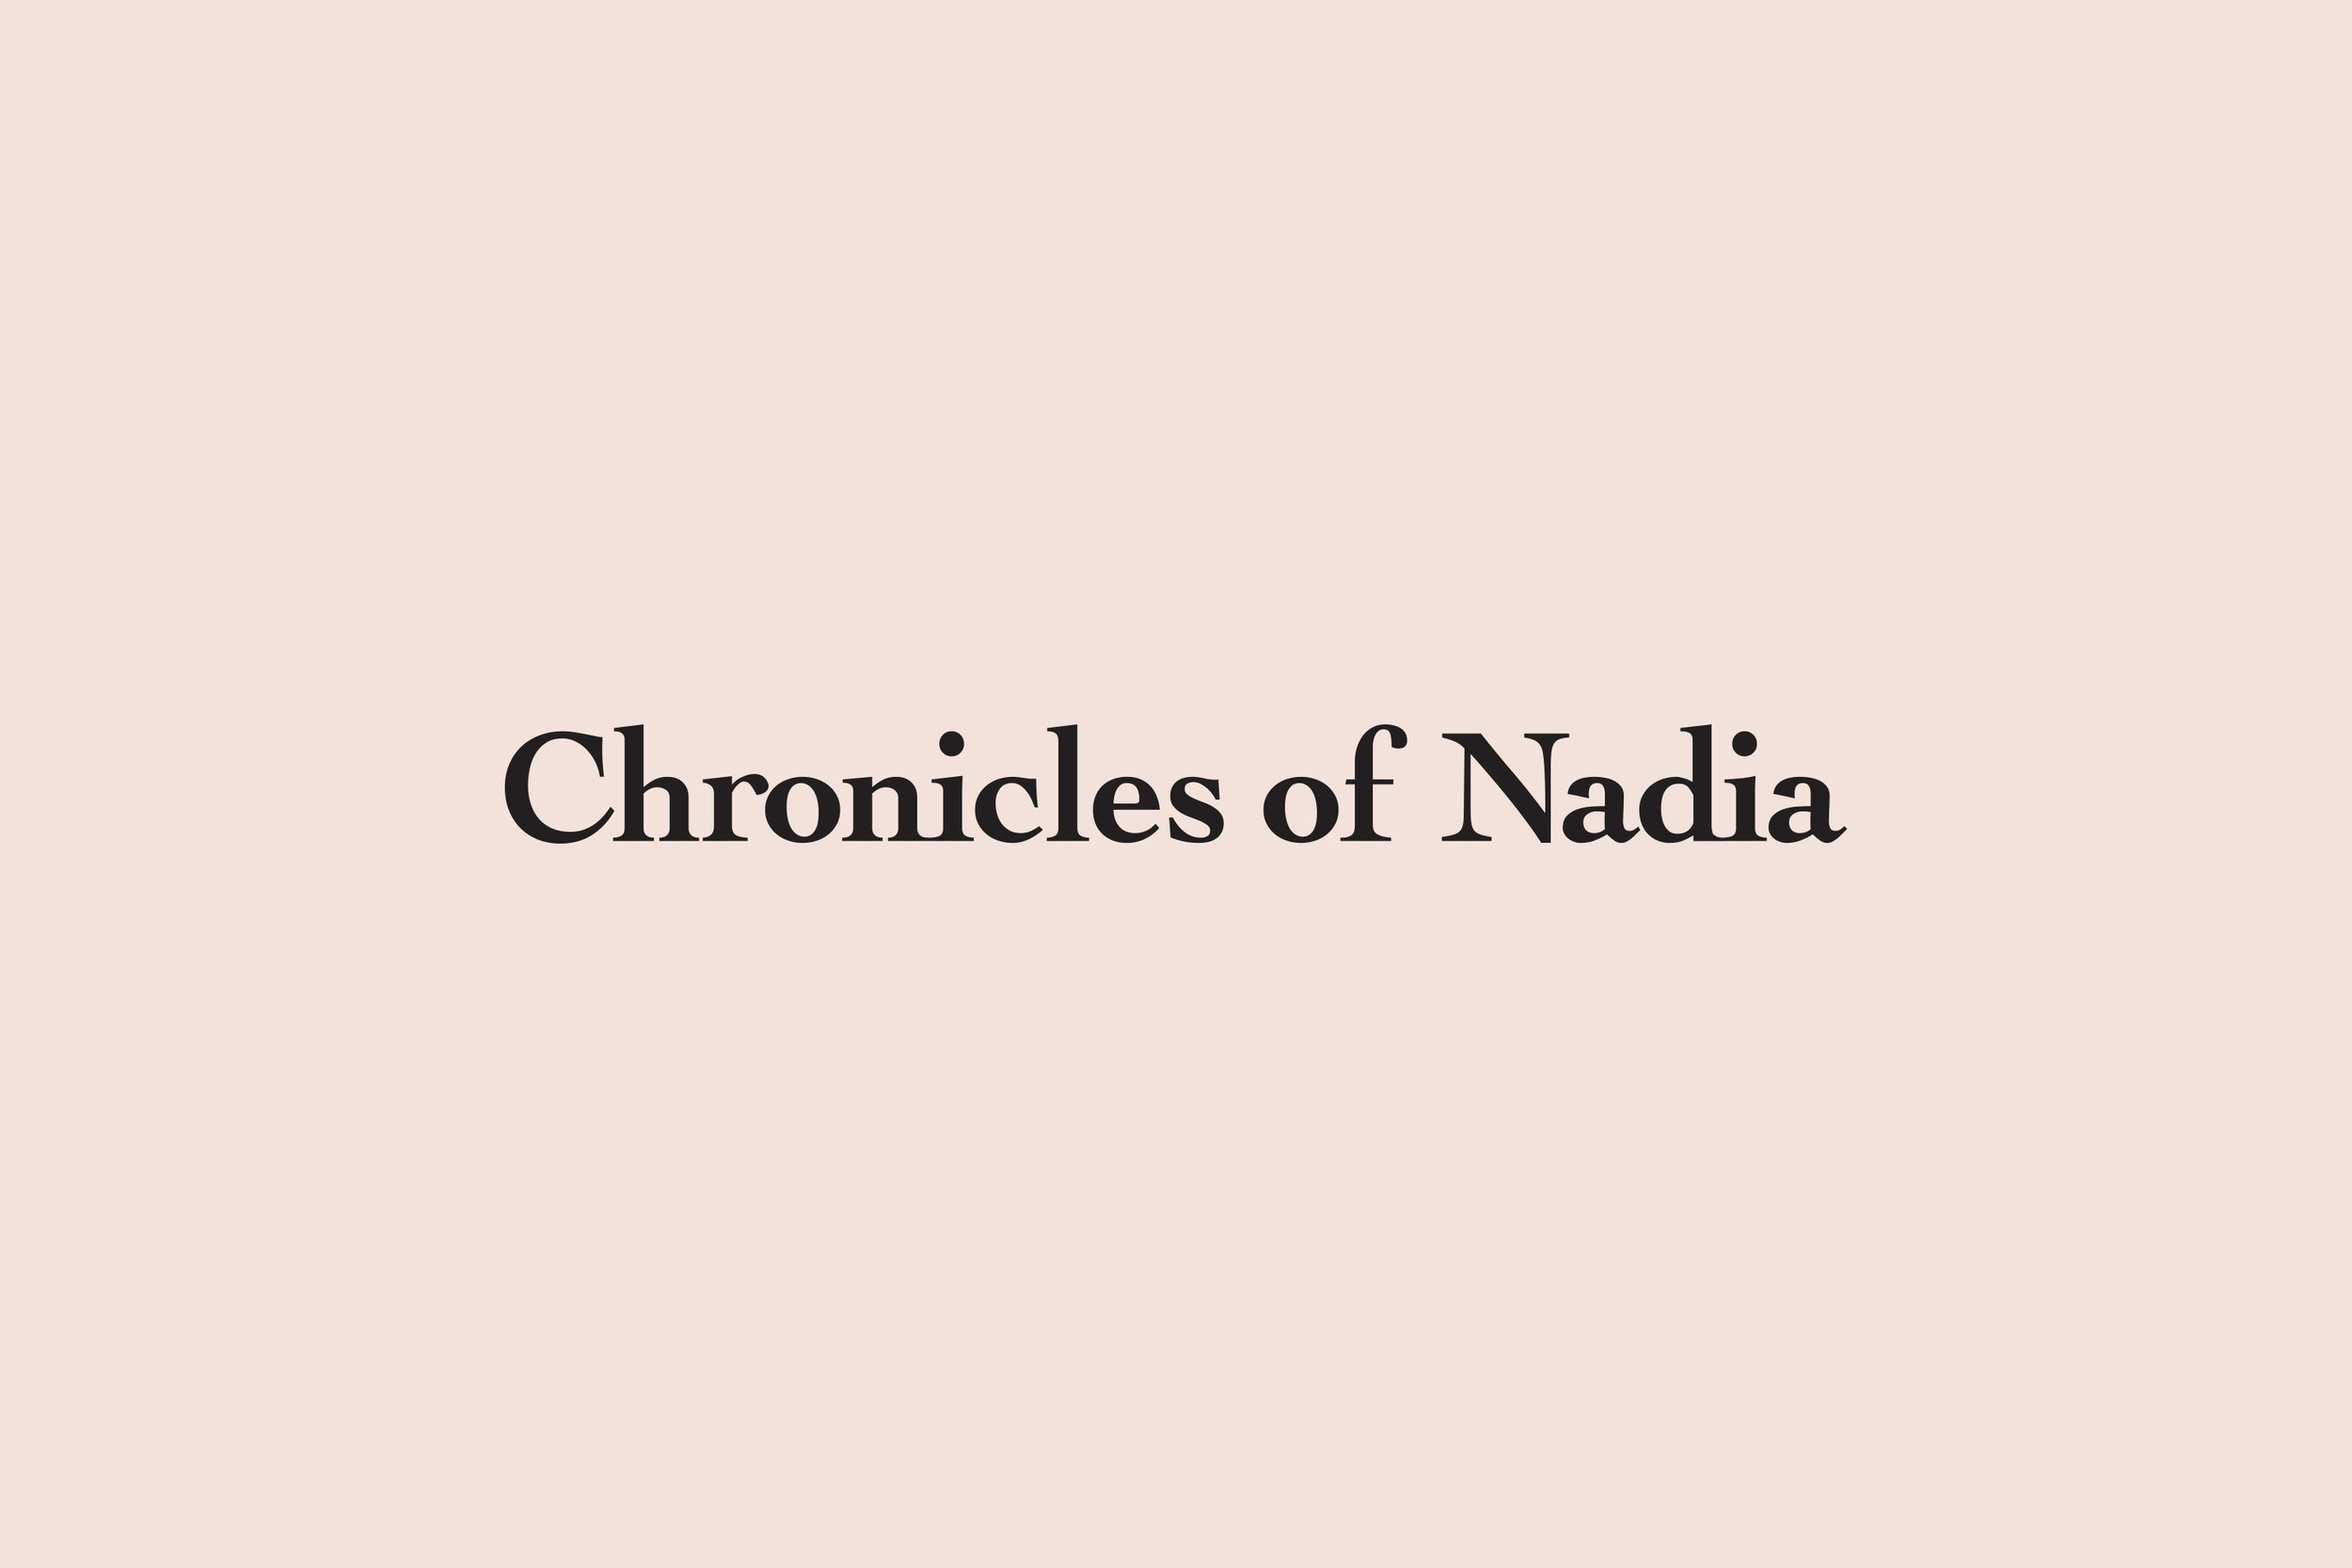 ChroniclesOFN_Folio_-logo.jpg